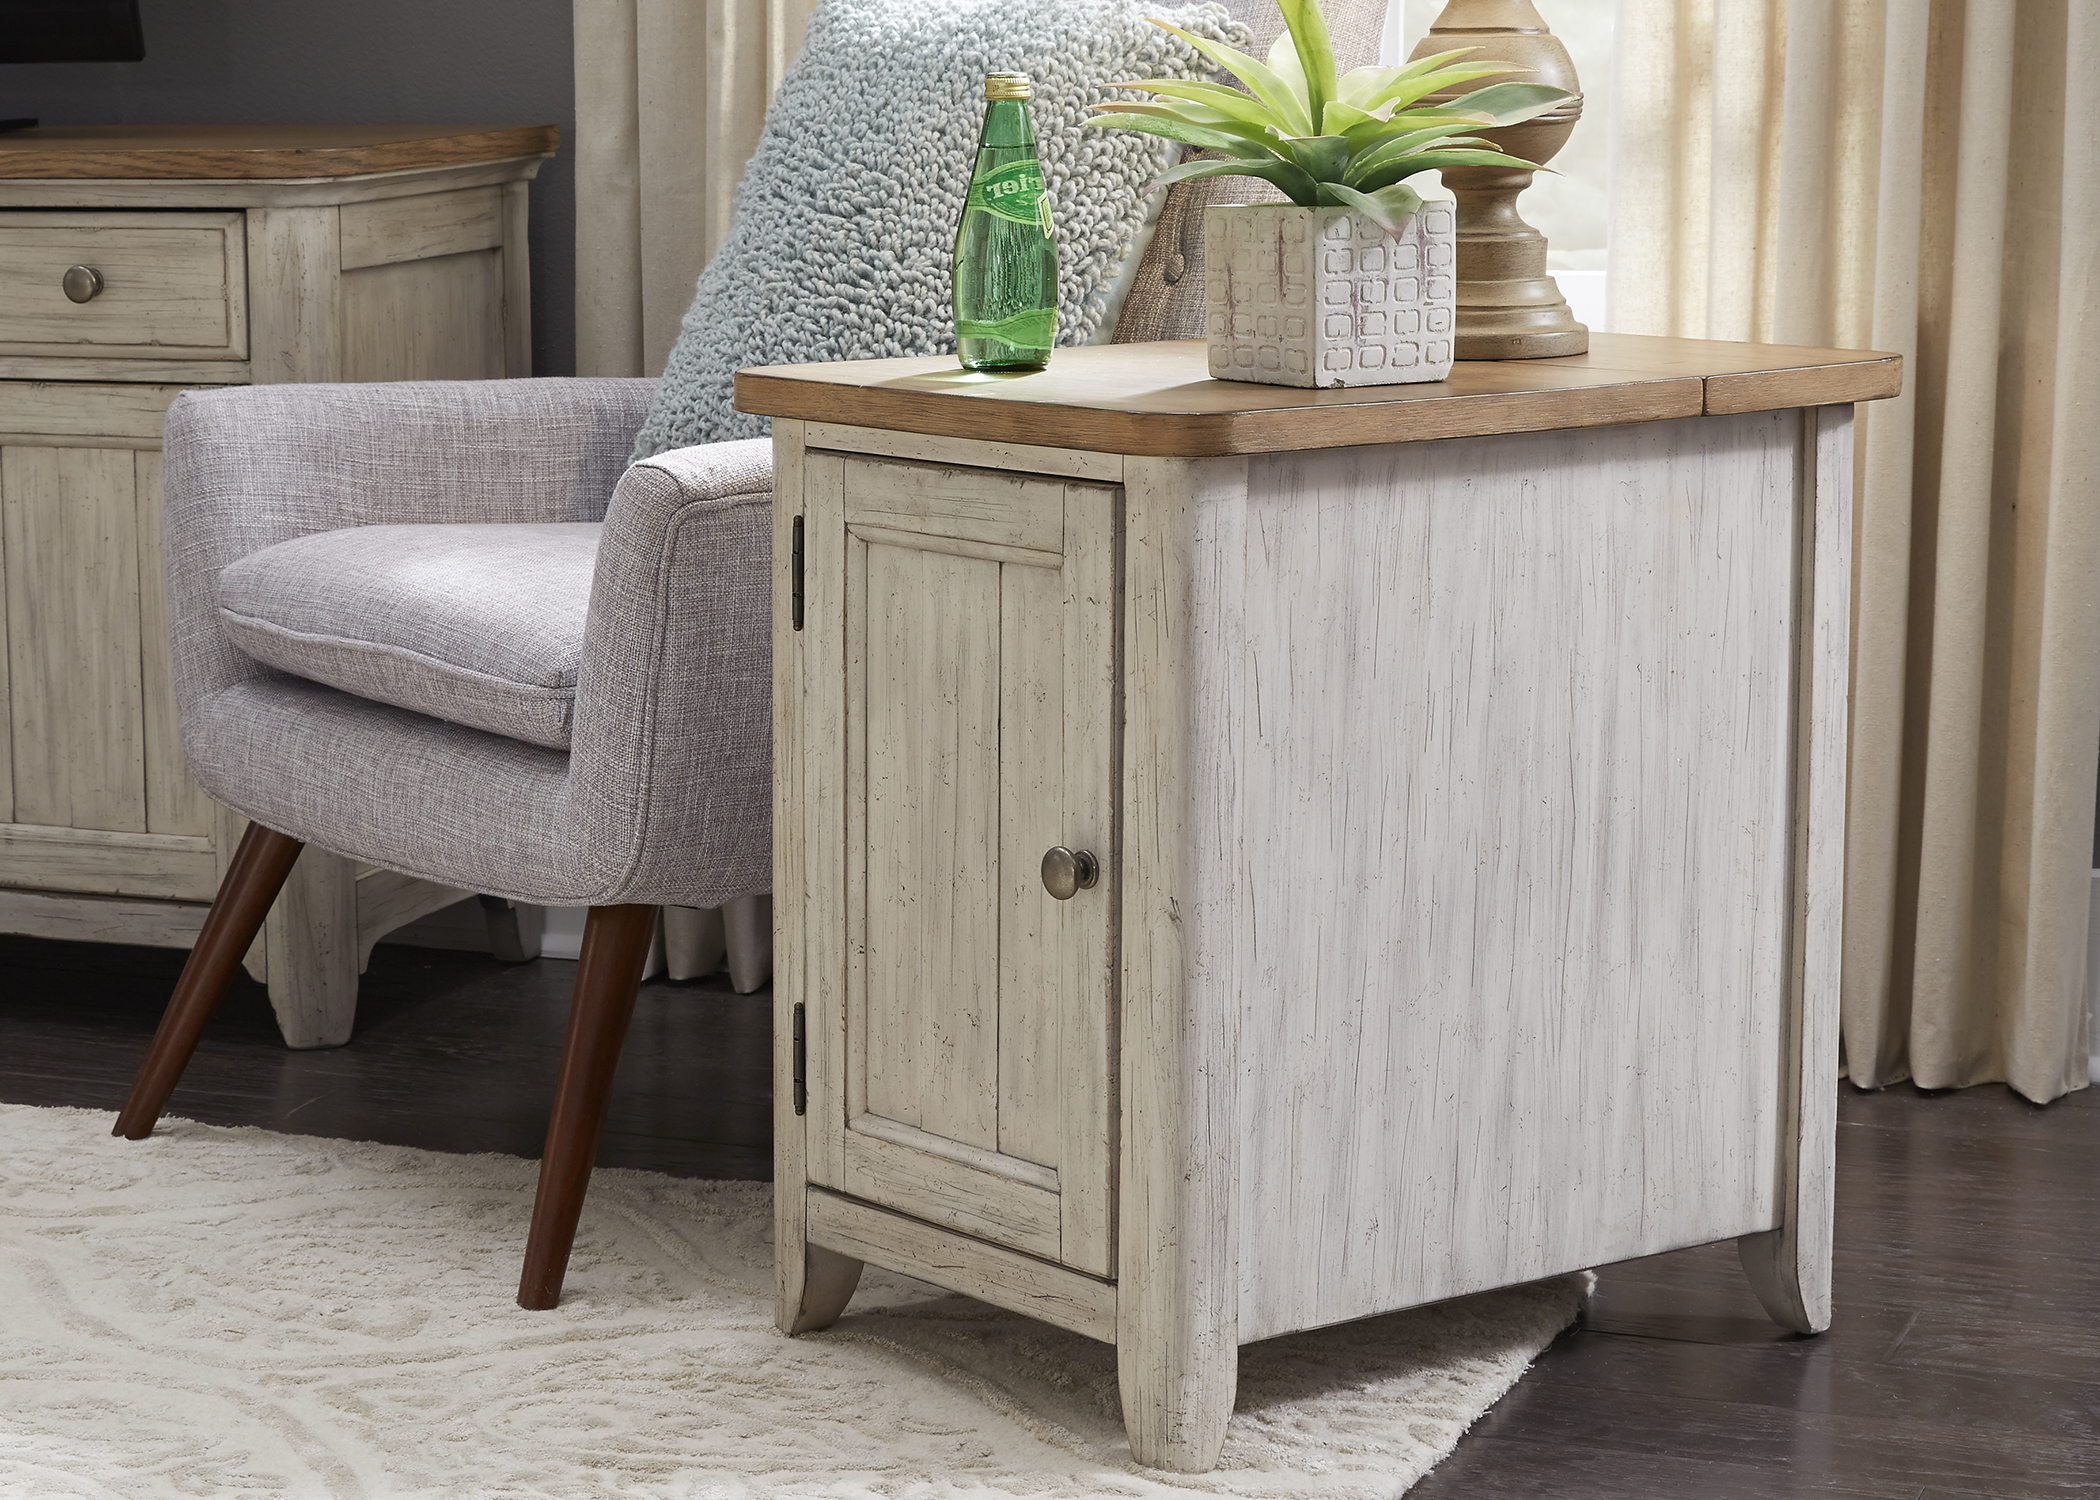 Liberty Farmhouse Reimagined Antique White Door Chair Side Table